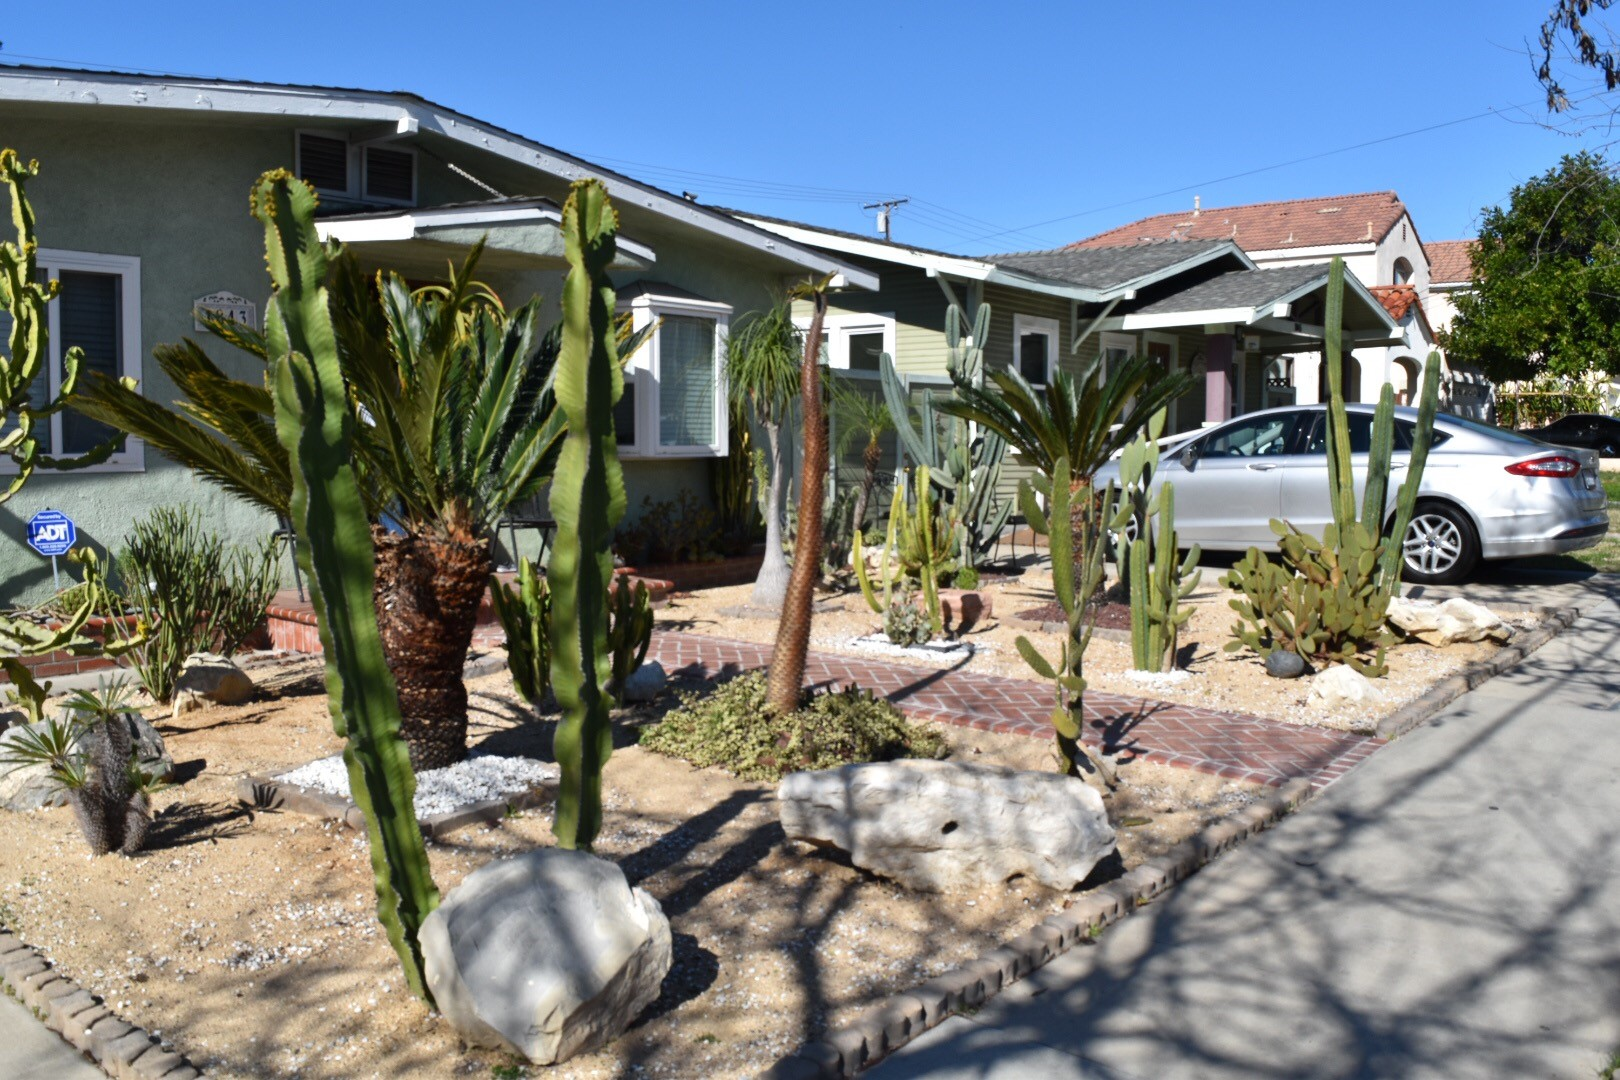 Cactus garden in front of a one story home